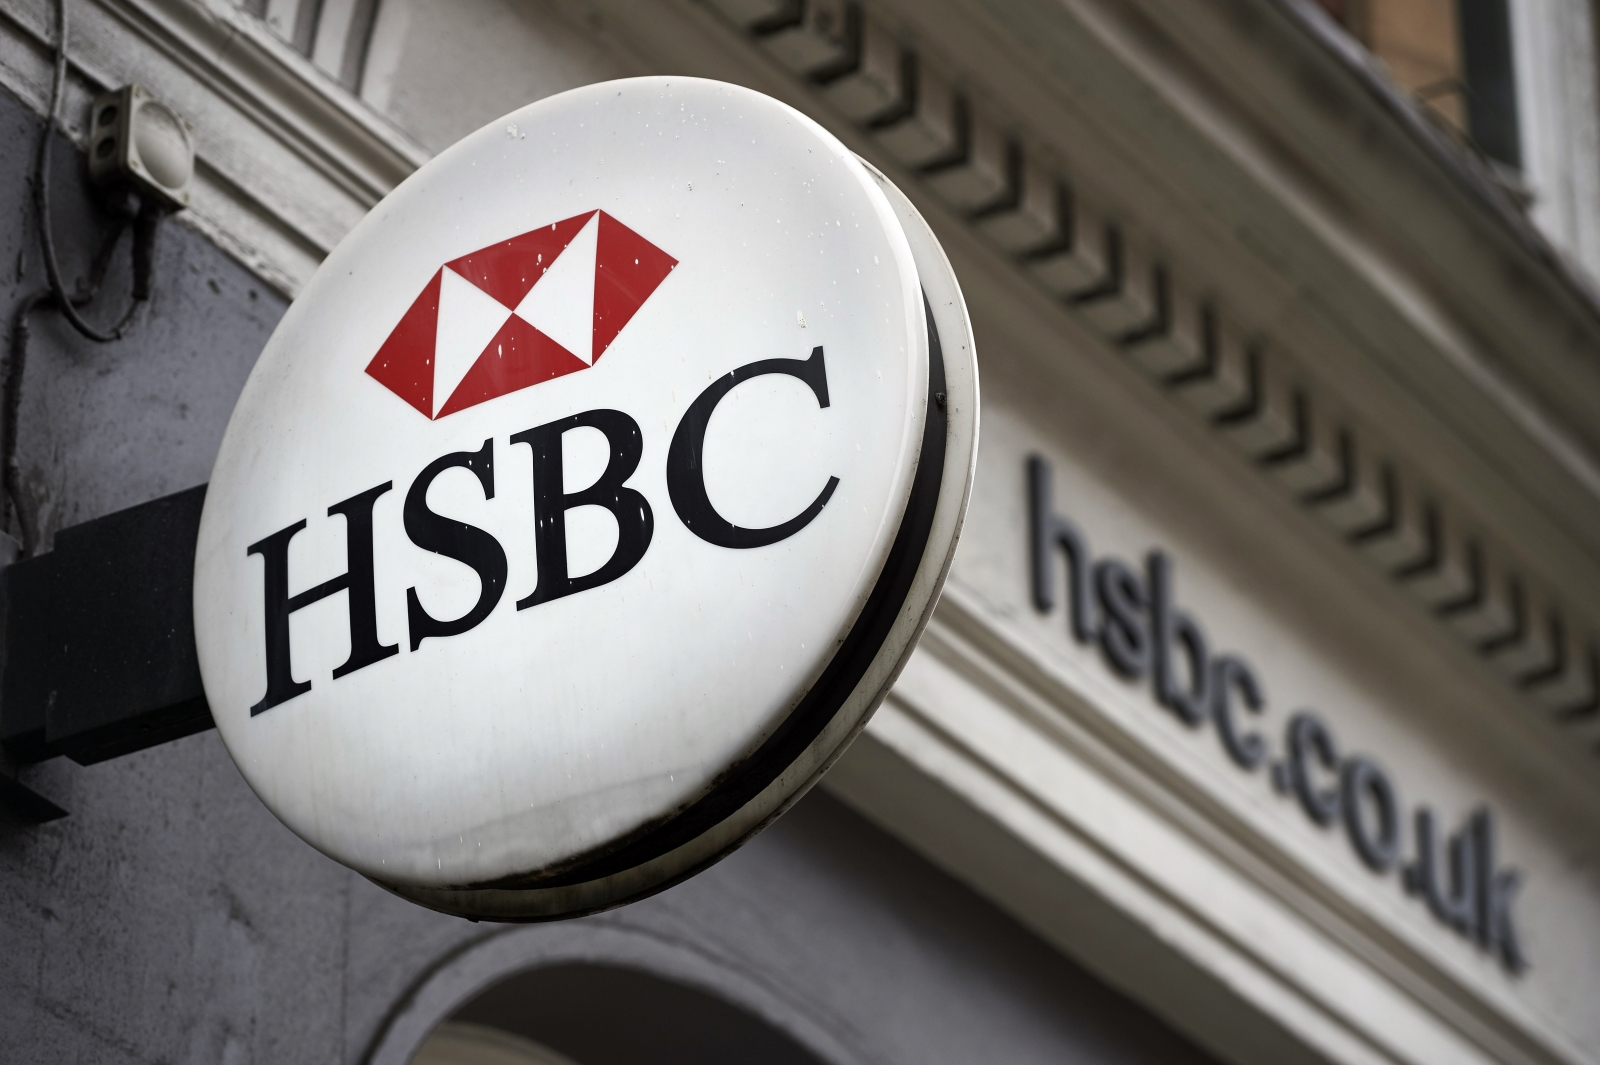 OurMine hackers claim to have targeted cyberattack on HSBC severs